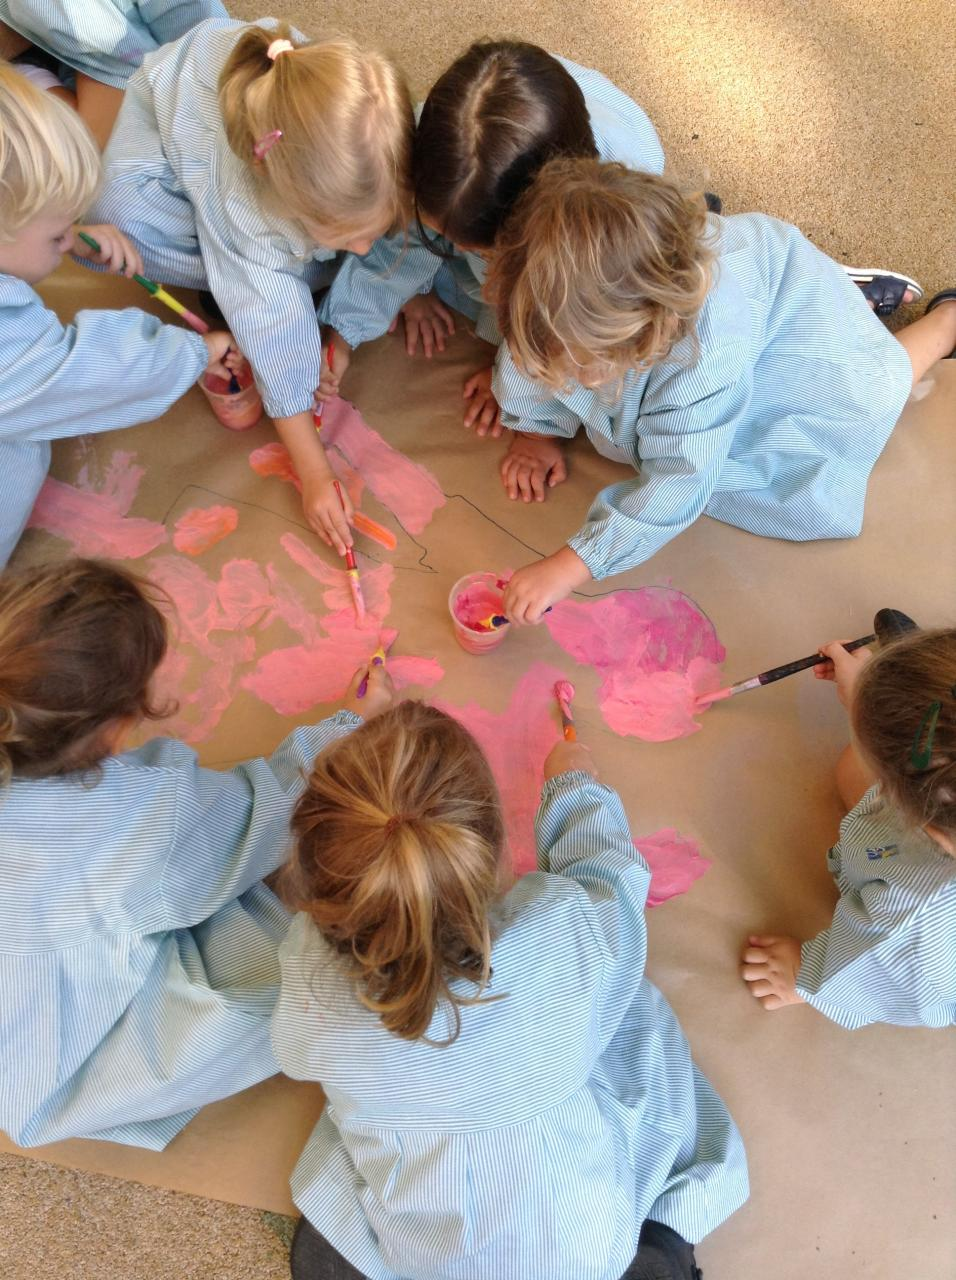 The children drew around a friend's body and painted and labelled the silhouette with the names of various body parts.